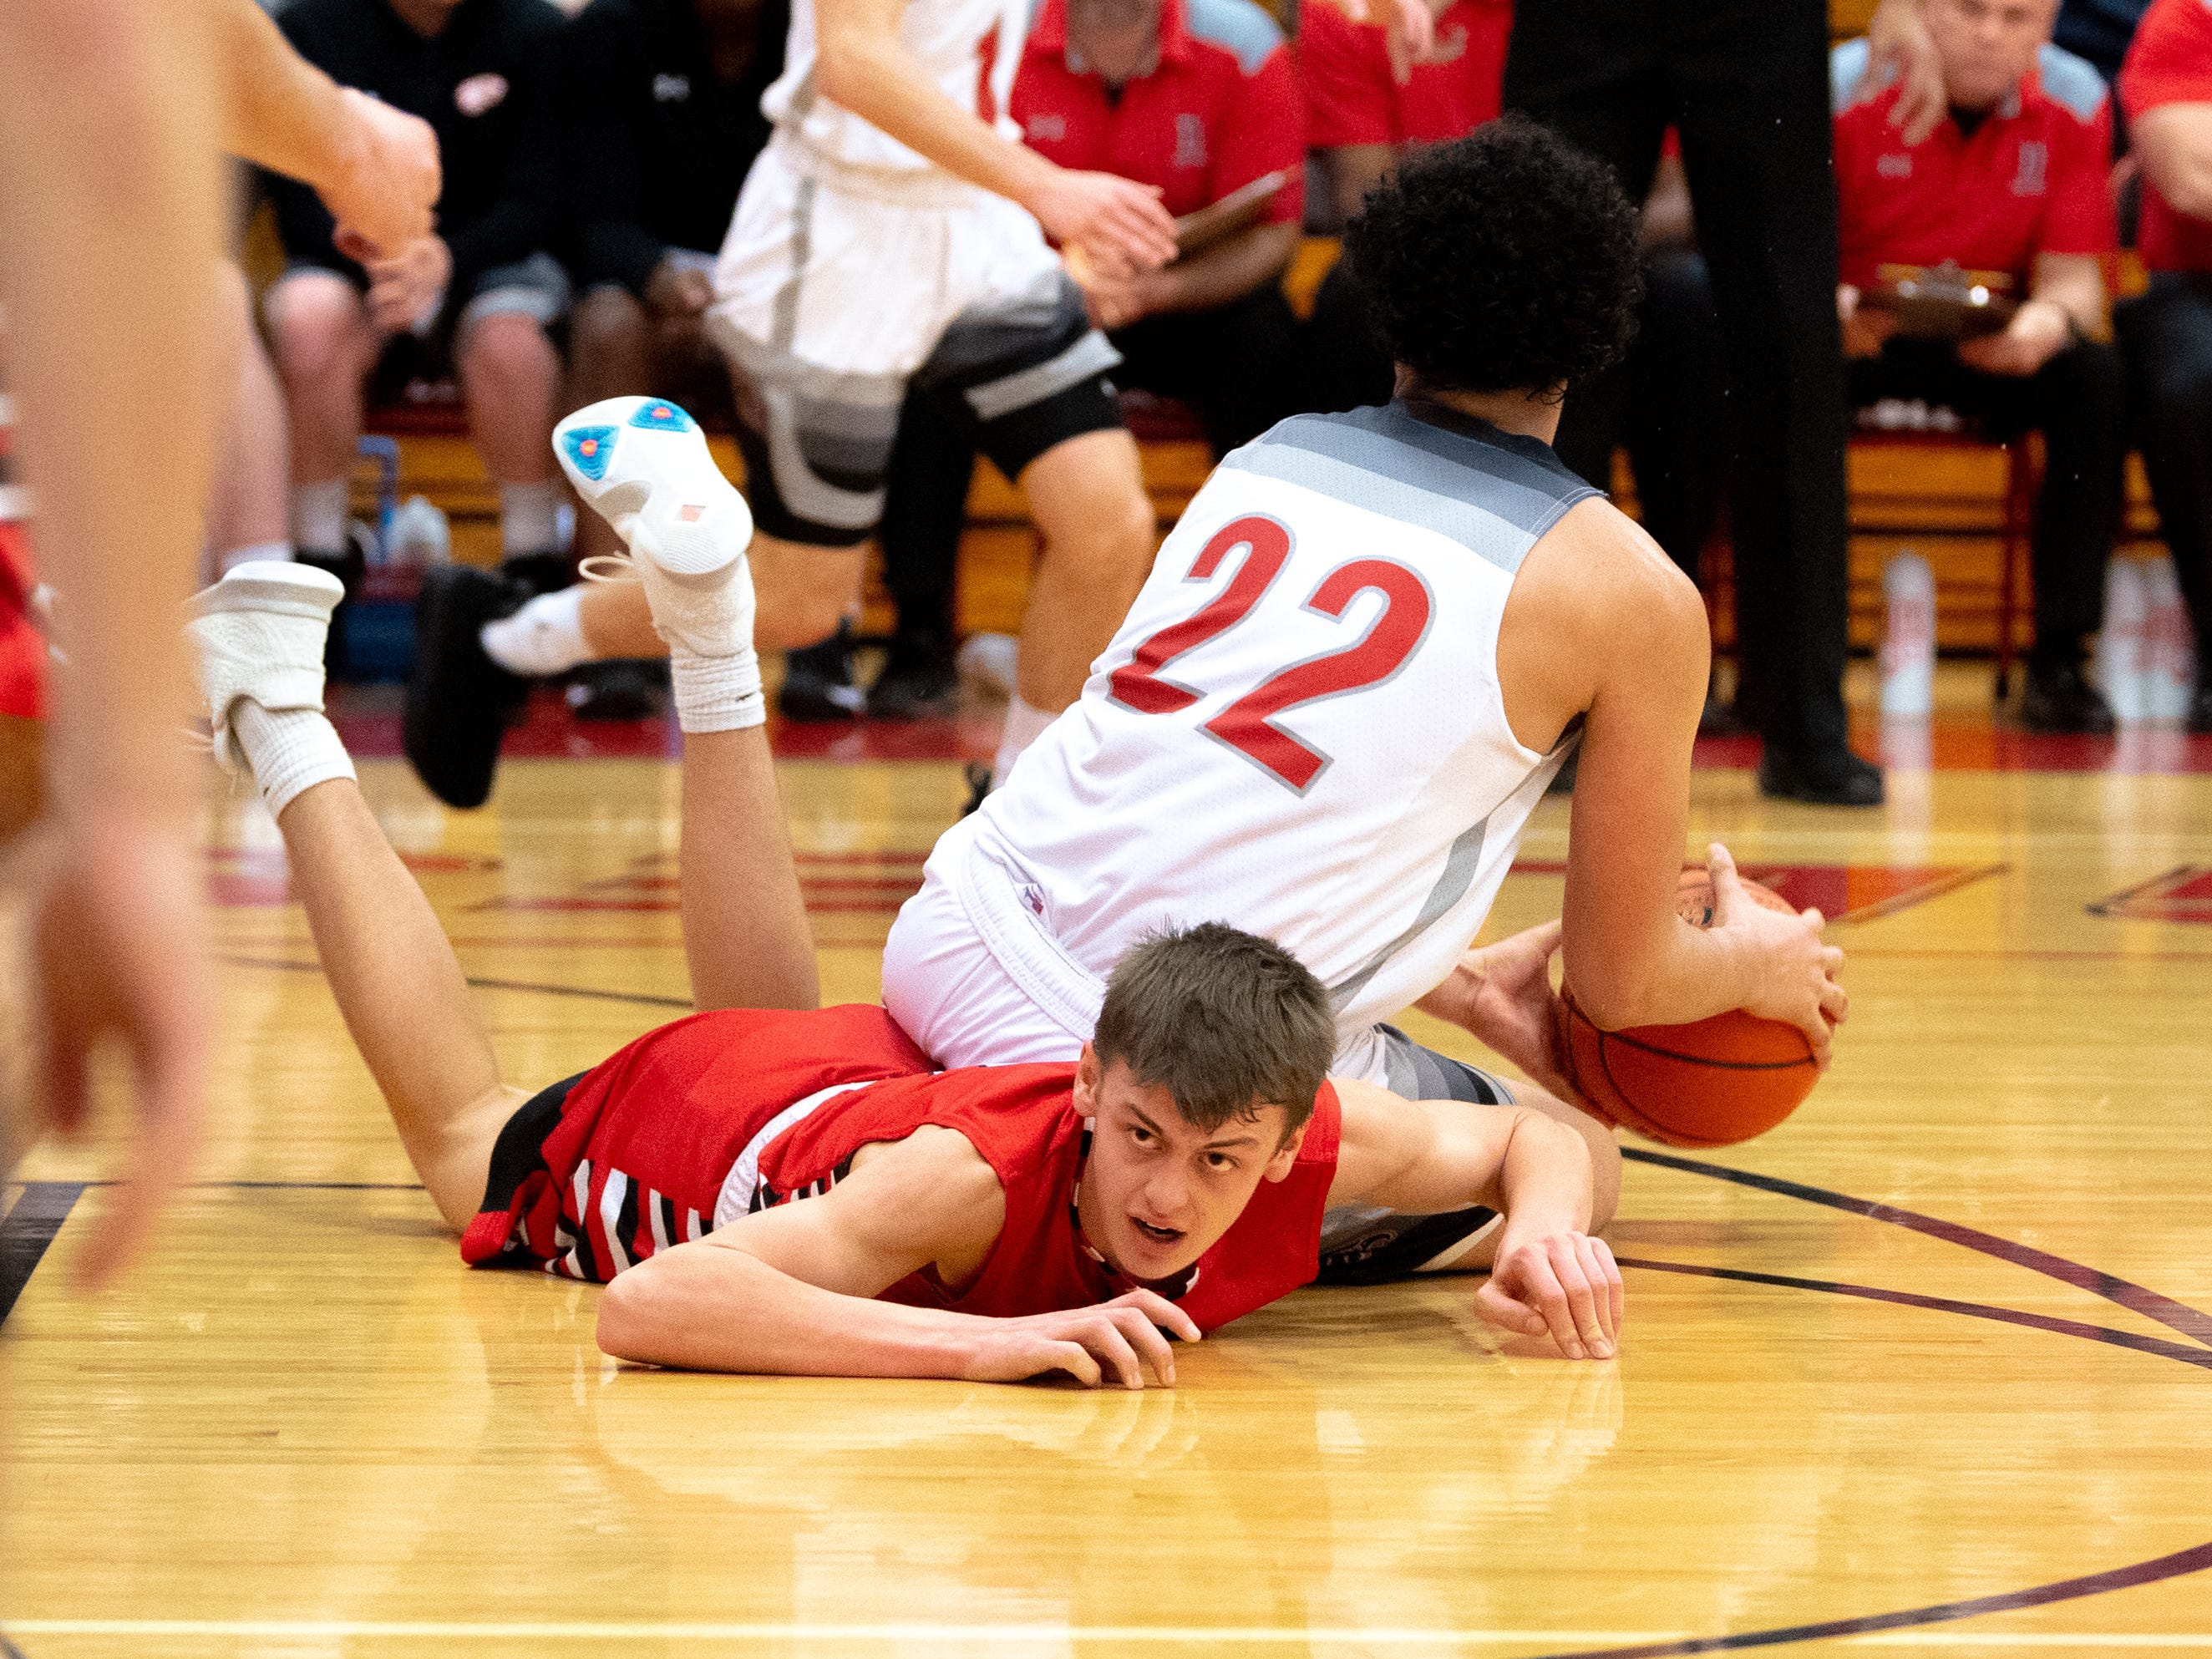 Gavin Held (2) of Susquehannock narrowly misses stealing the ball from Elijah Sutton (22) of Dover during the boys' basketball game, December 18, 2018. The Eagles defeated the Warriors 69-61.